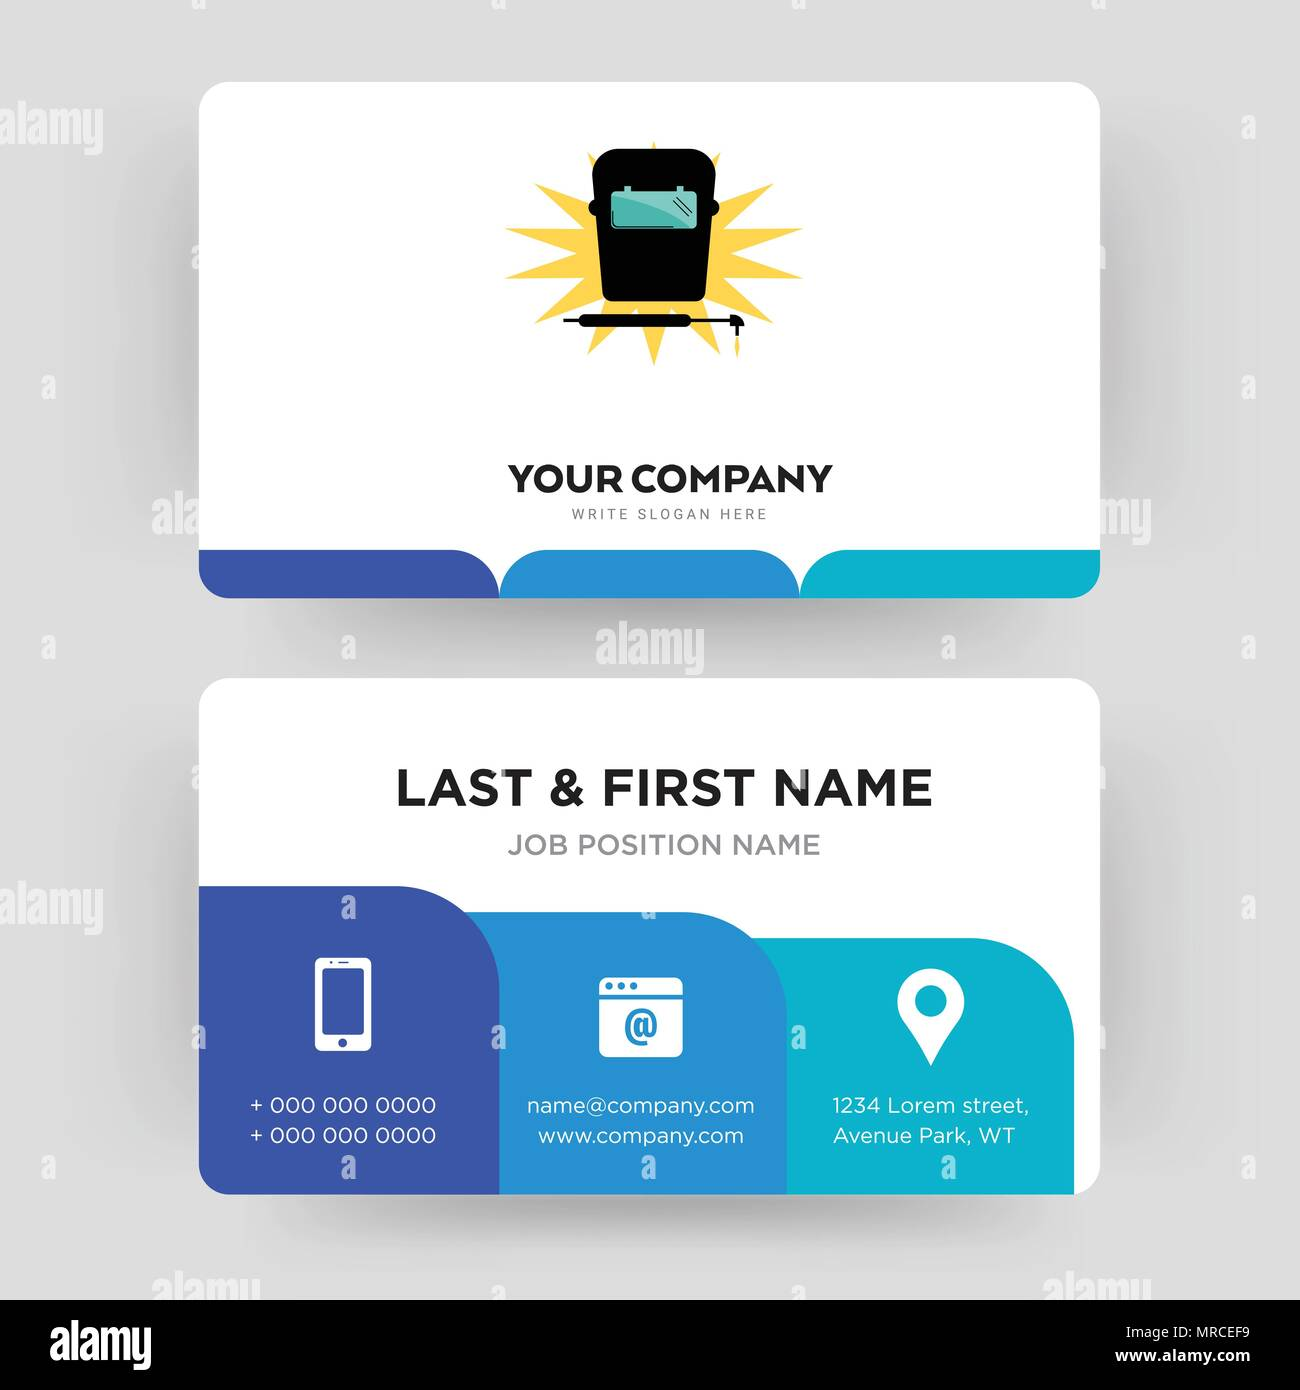 Welding business card design template visiting for your company welding business card design template visiting for your company modern creative and clean identity card vector colourmoves